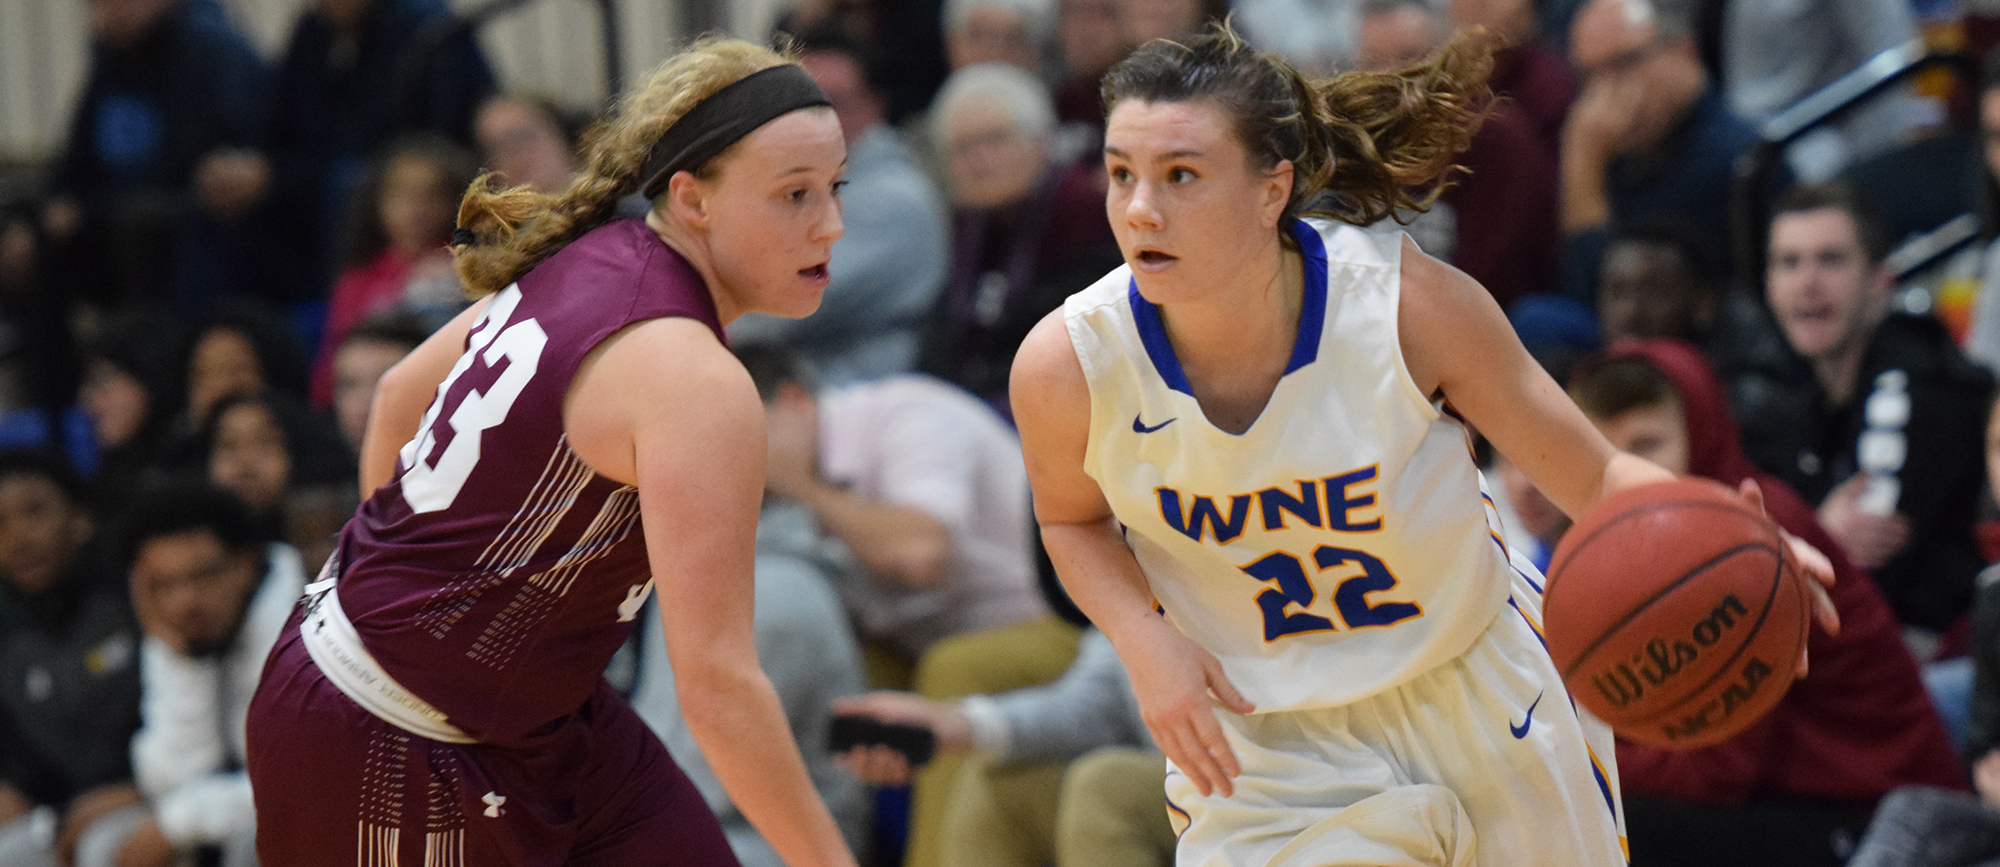 Junior Emily Farrell scored a team-high 15 points as Western New England picked up a 58-49 victory over crosstown rival Springfield College on Tuesday night. (Photo by Rachael Margossian)